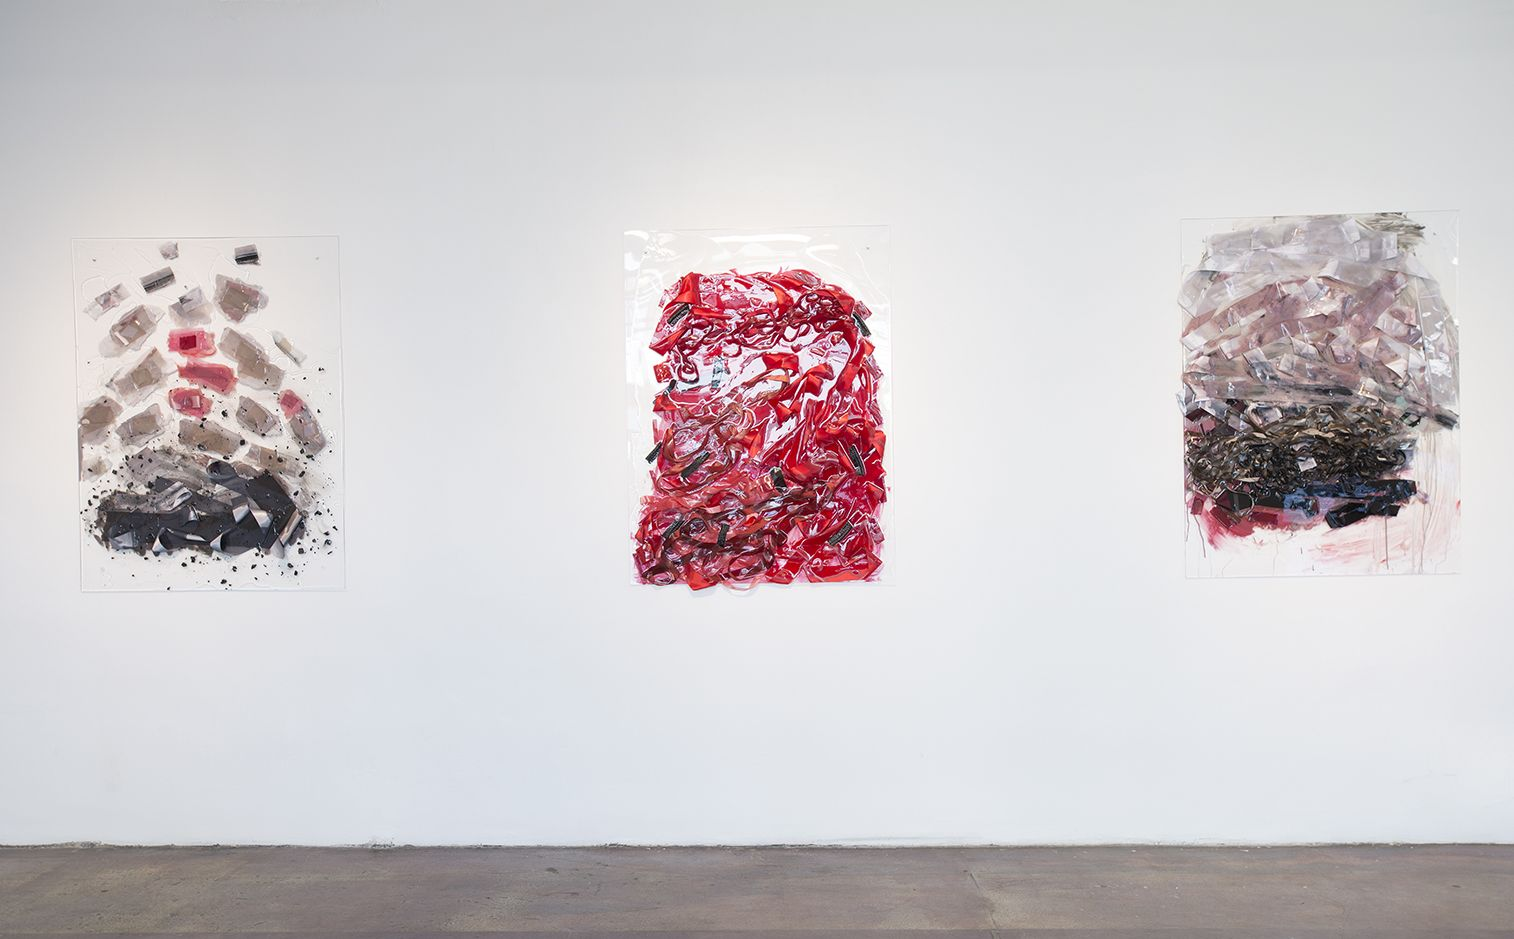 Installation View, Vadis Turner,Bells andBurn Piles, Geary Contemporary, 2016